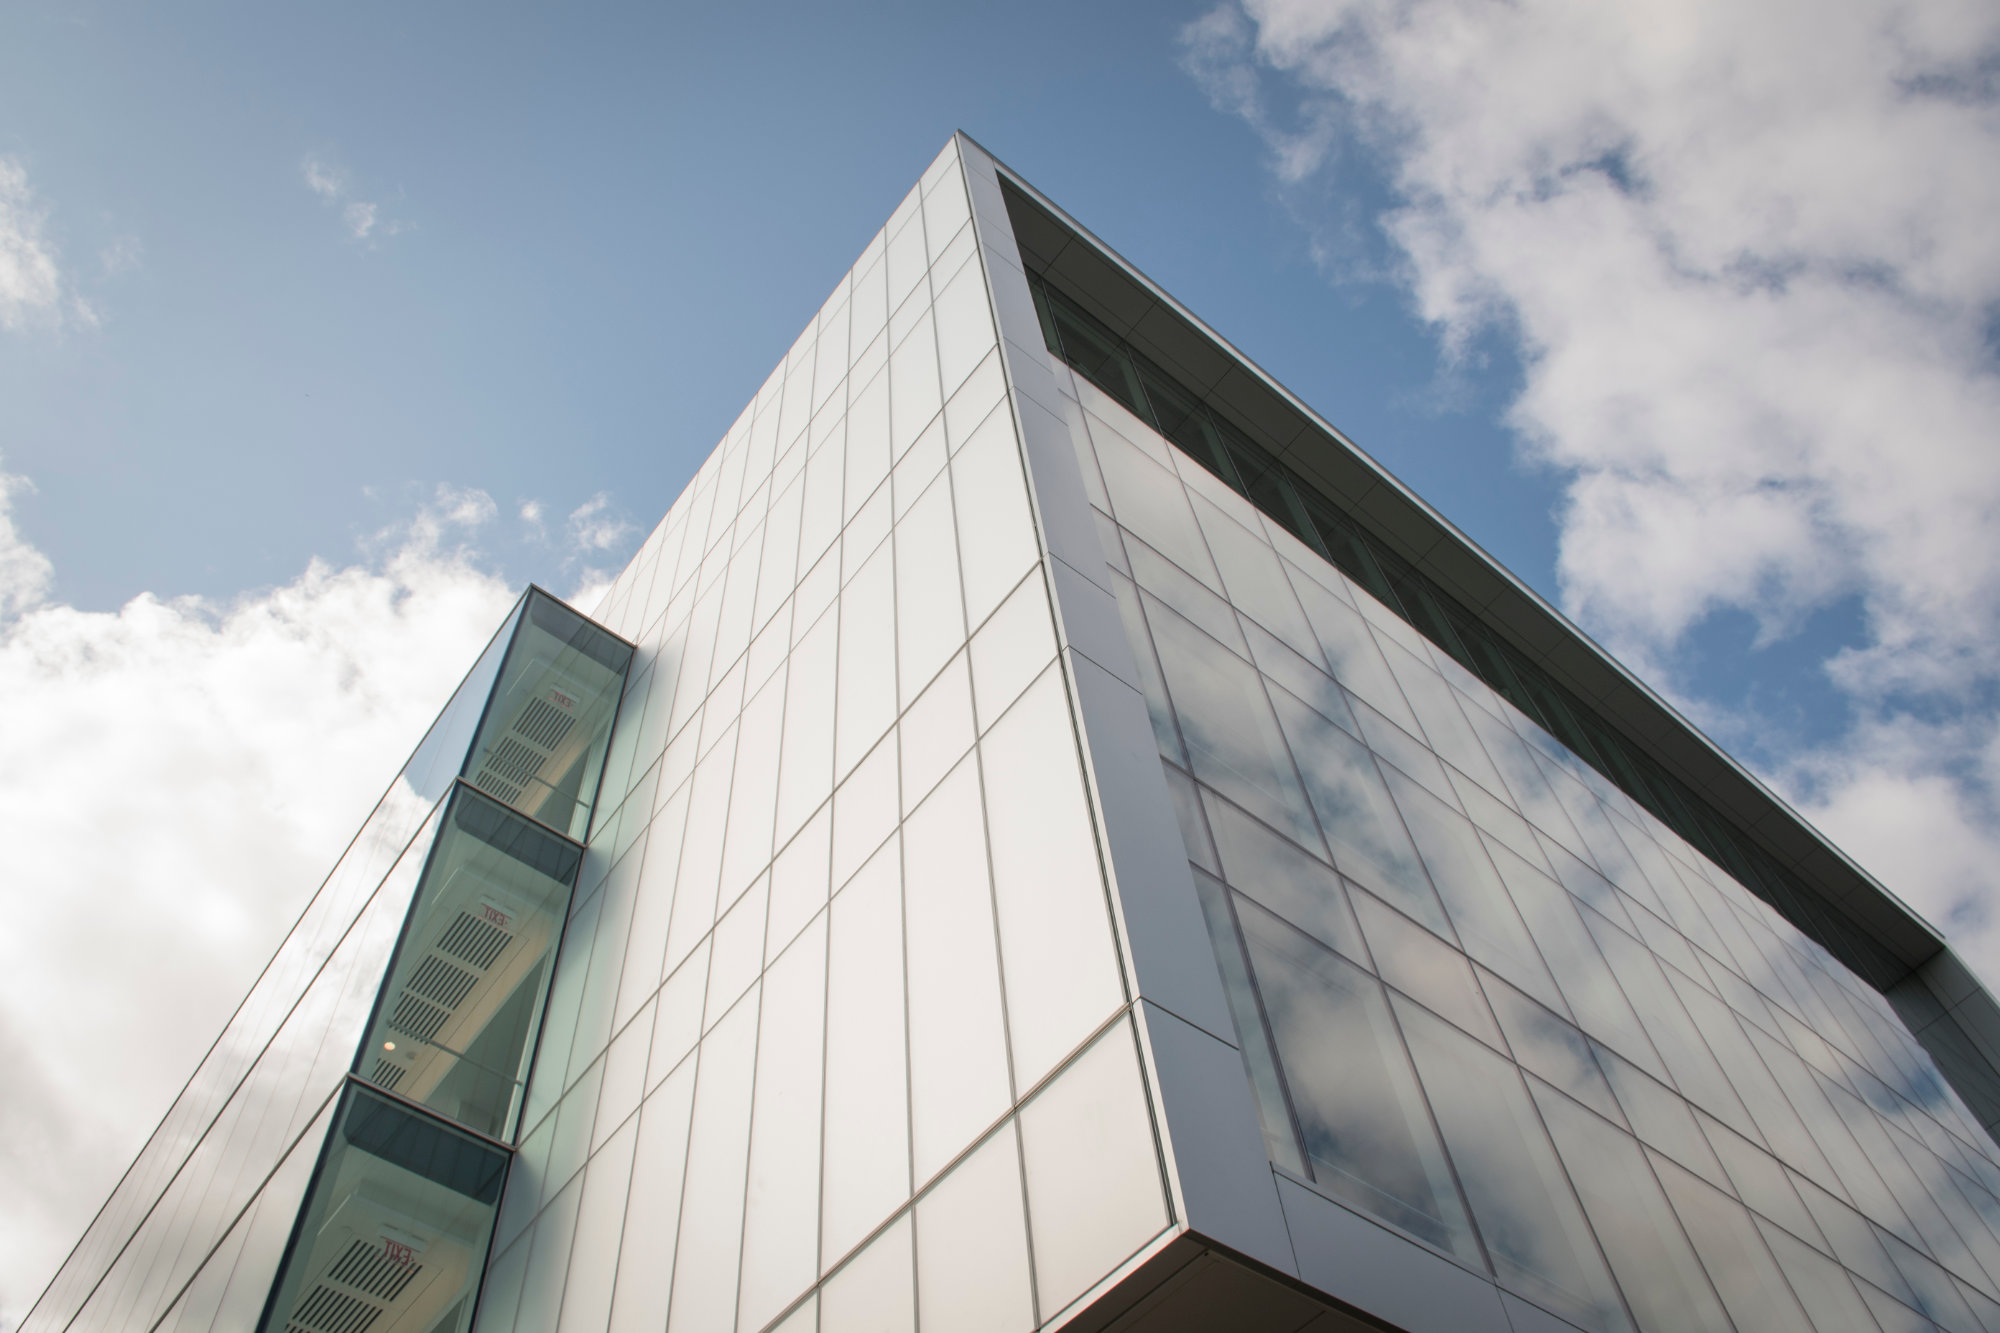 A diagonal view of the glass facade, Fascitelli Center for Advanced Engineering